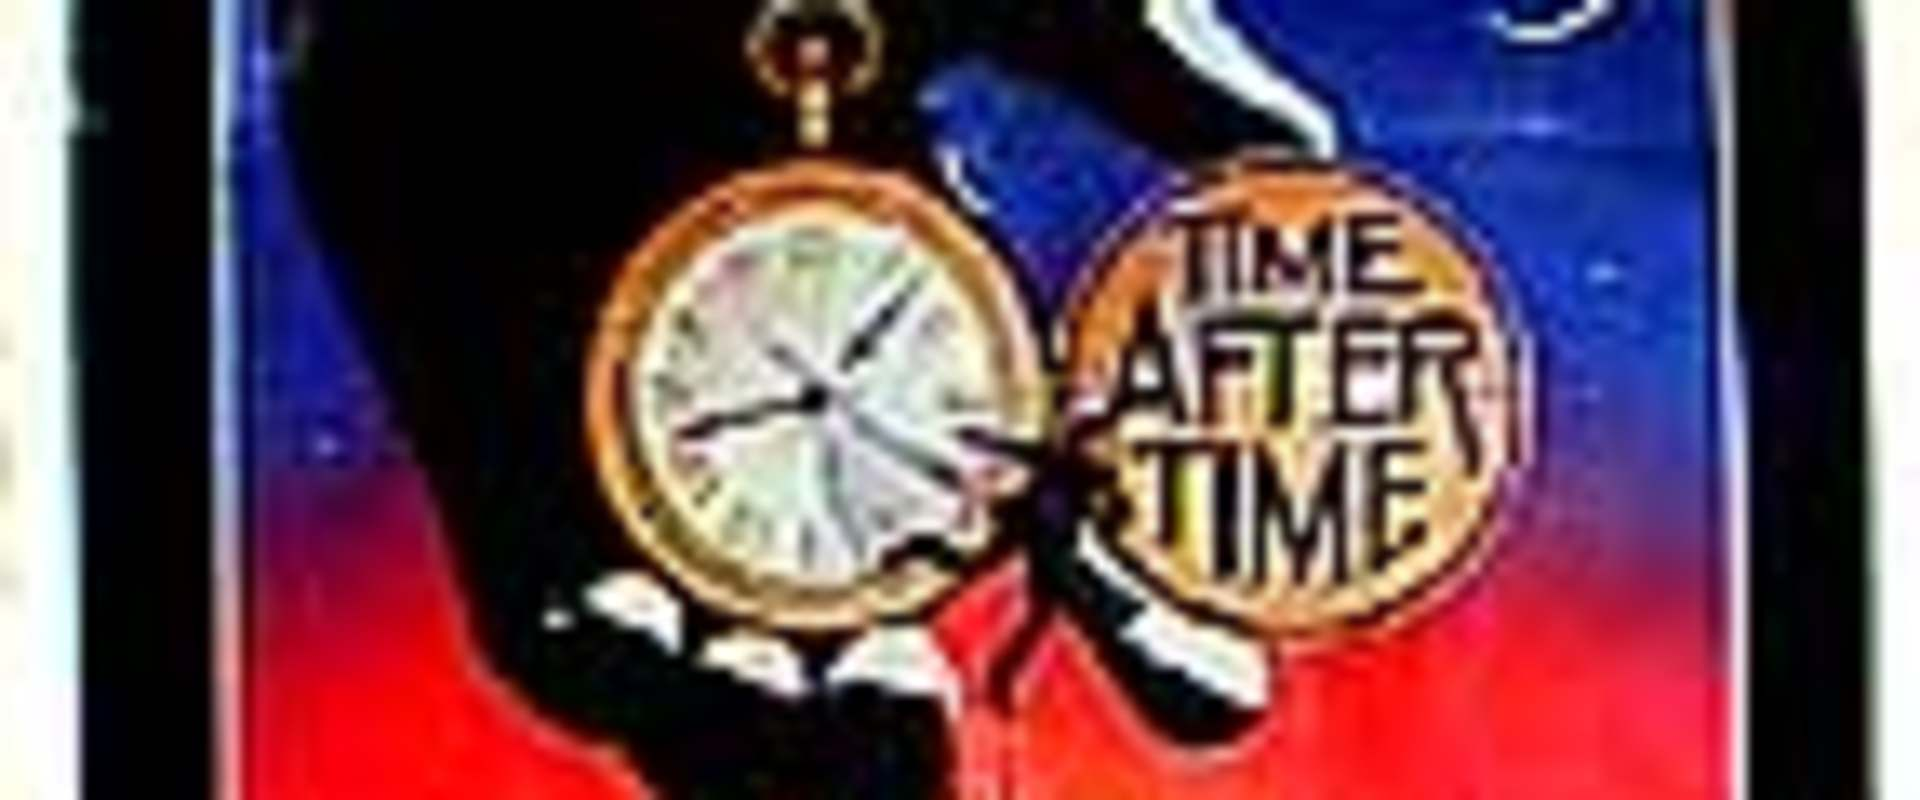 Time After Time background 1